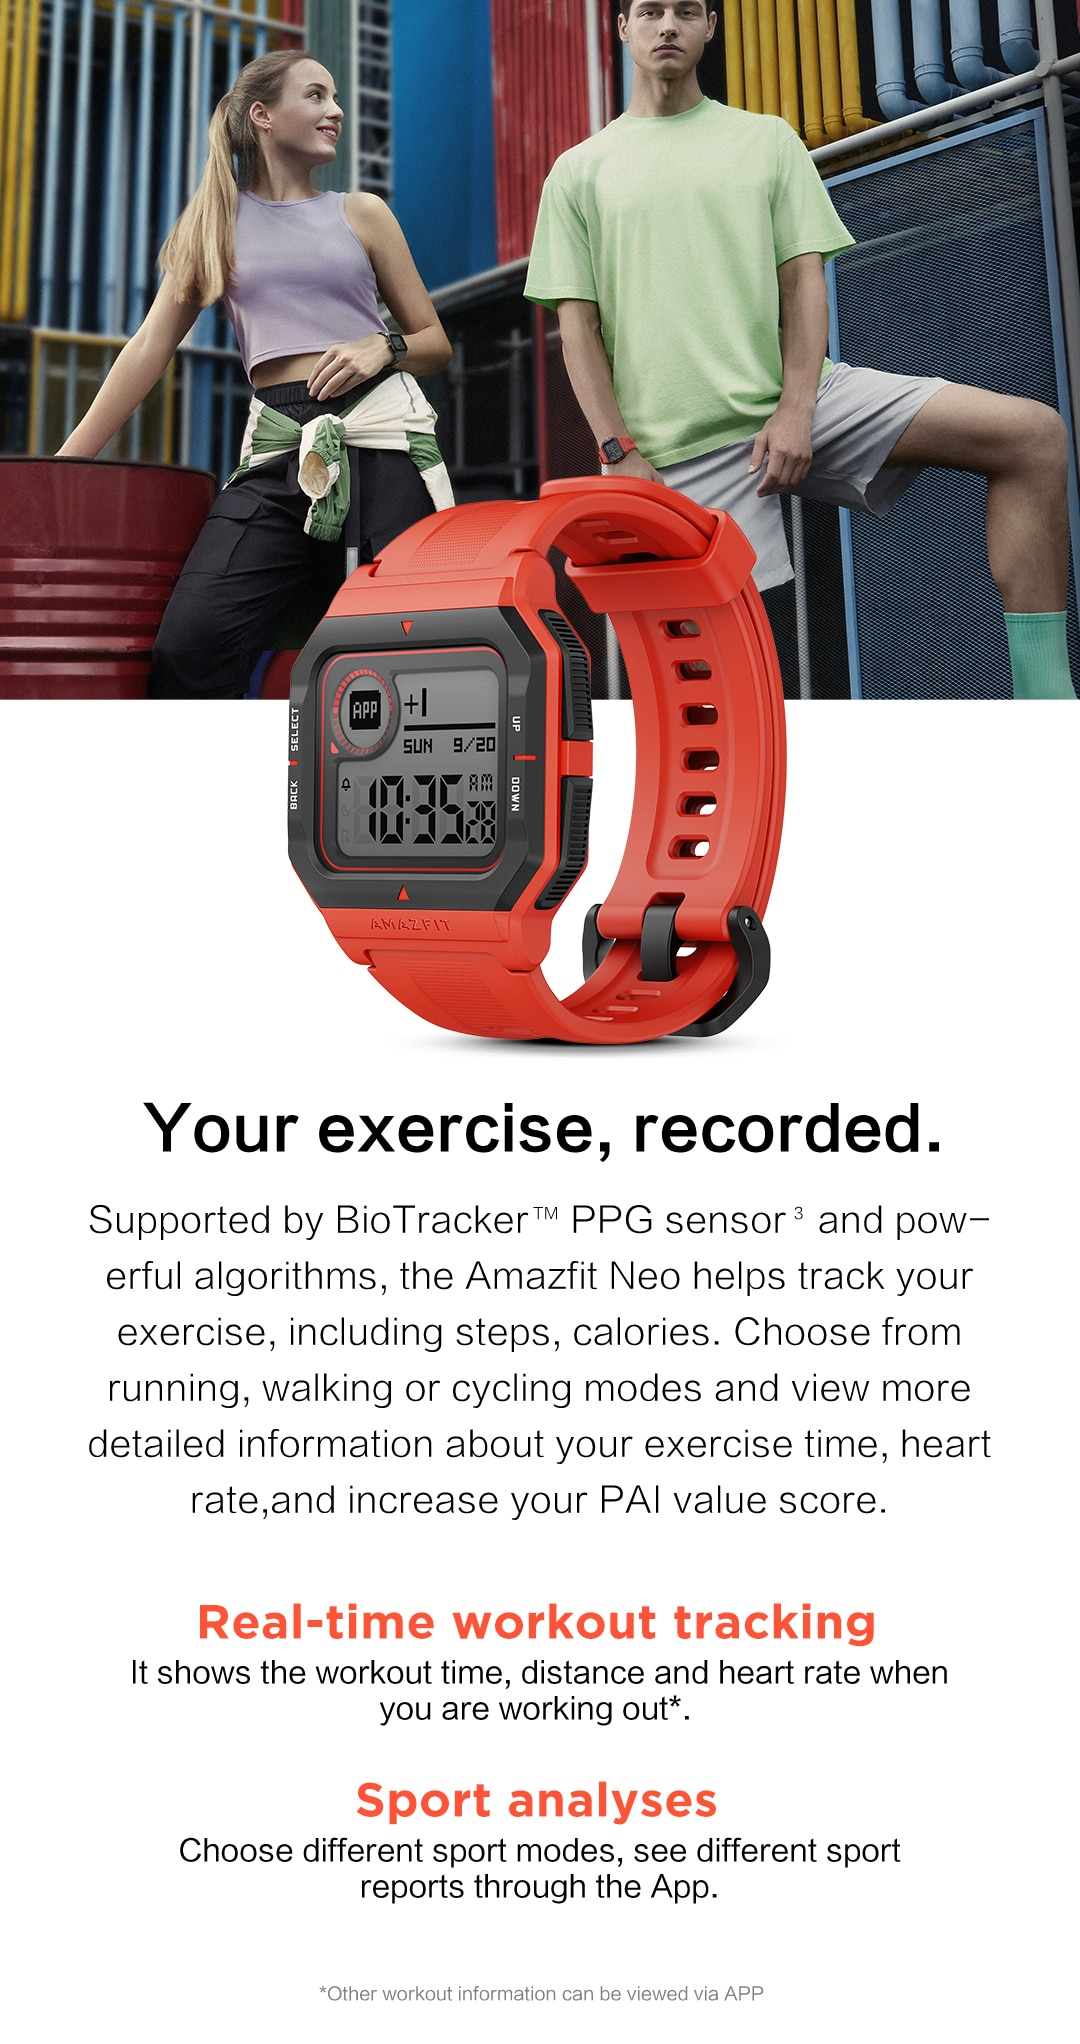 NEW 2020 Amazfit Neo Smart Watch Bluetooth Smartwatch 5ATM Heart Rate Tracking 28Days Battery Life Watch For Android IOS Phone